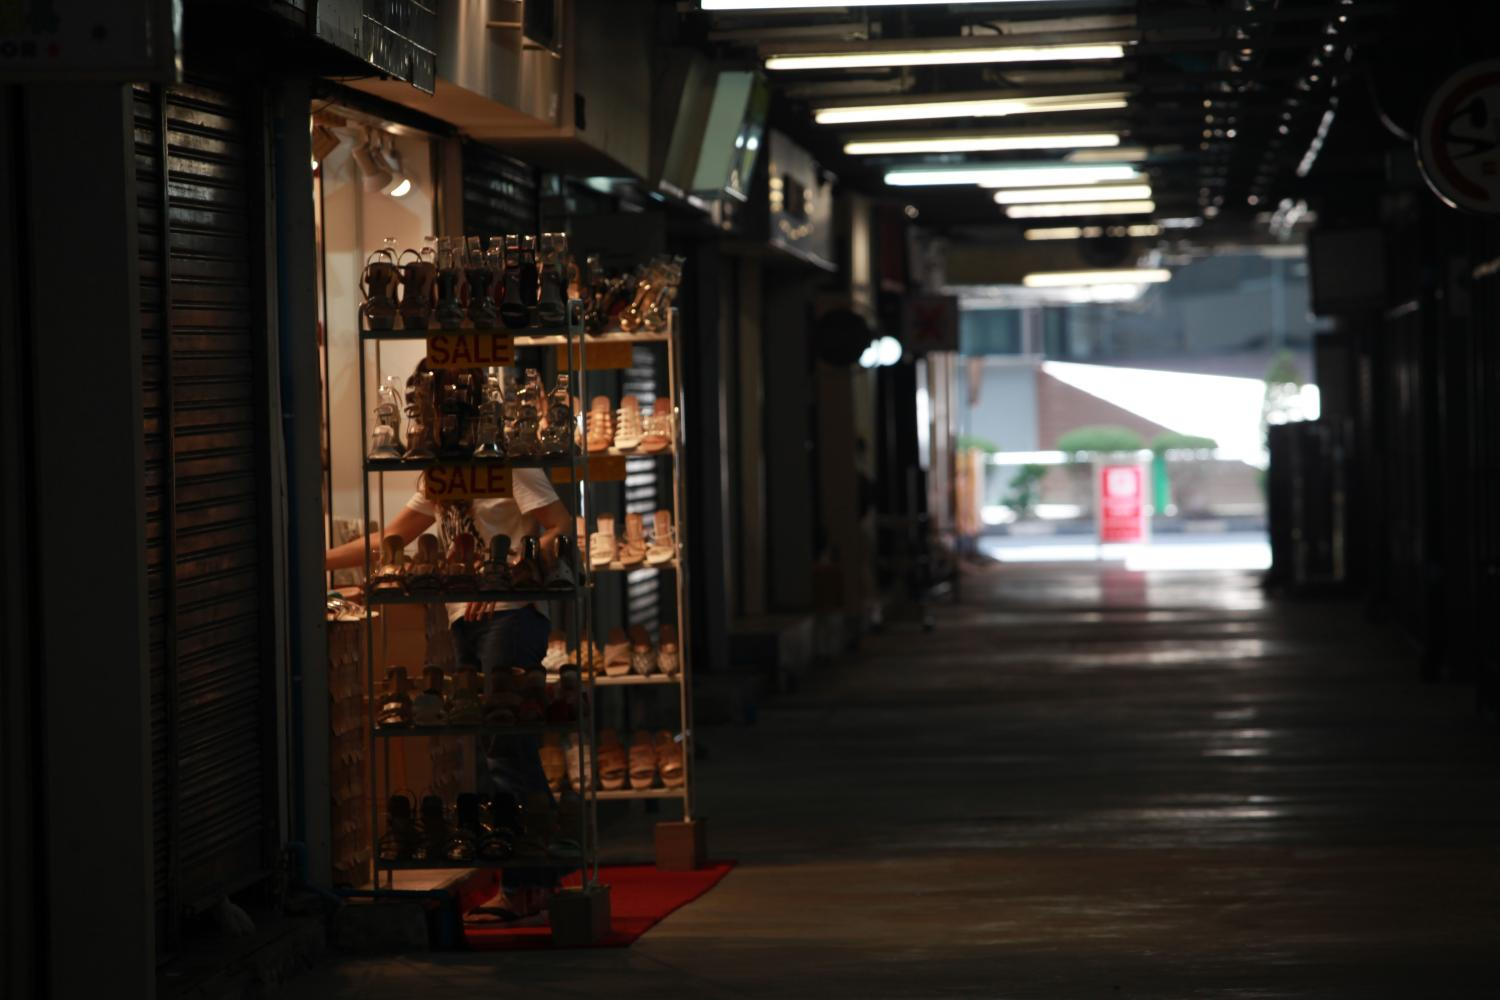 A desolate ambiance at Siam Square as shops are temporarily closed and traffic is sparse following the prolonged Covid-19 outbreak in the capital. (Photo: Apichart Jinakul)